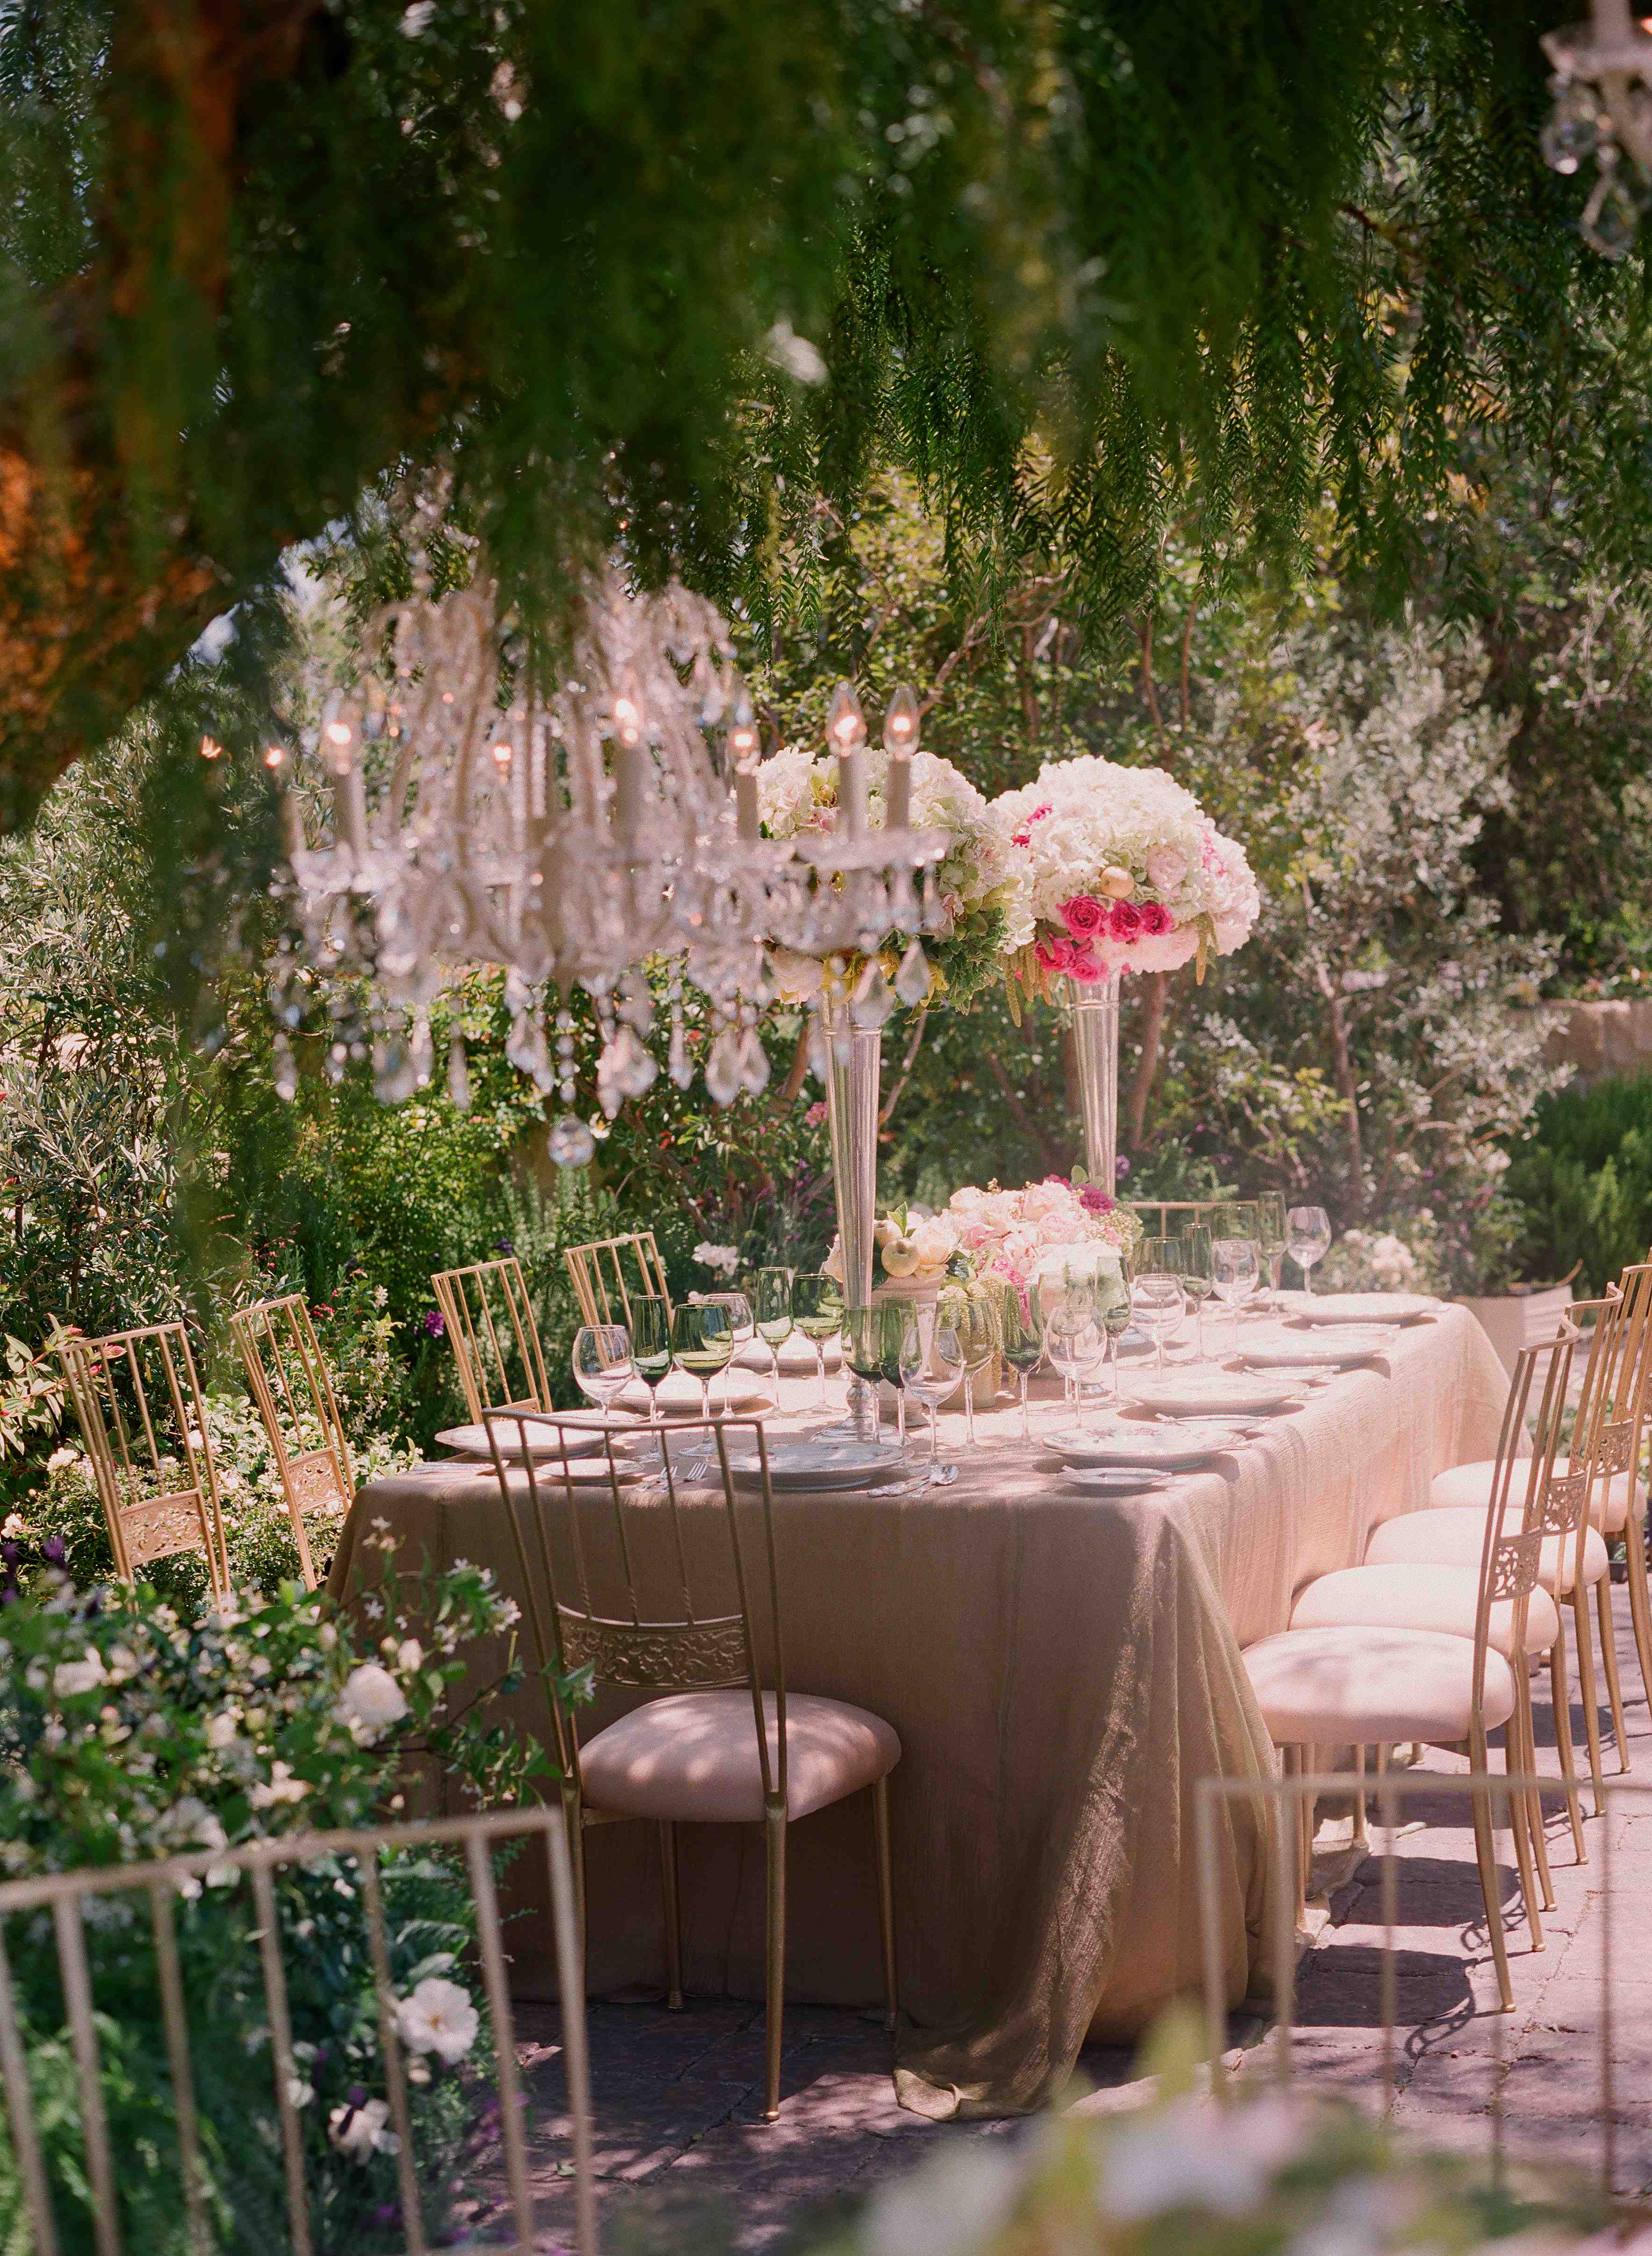 garden wedding ideas garden wedding reception chameleon chair collection intimate wedding